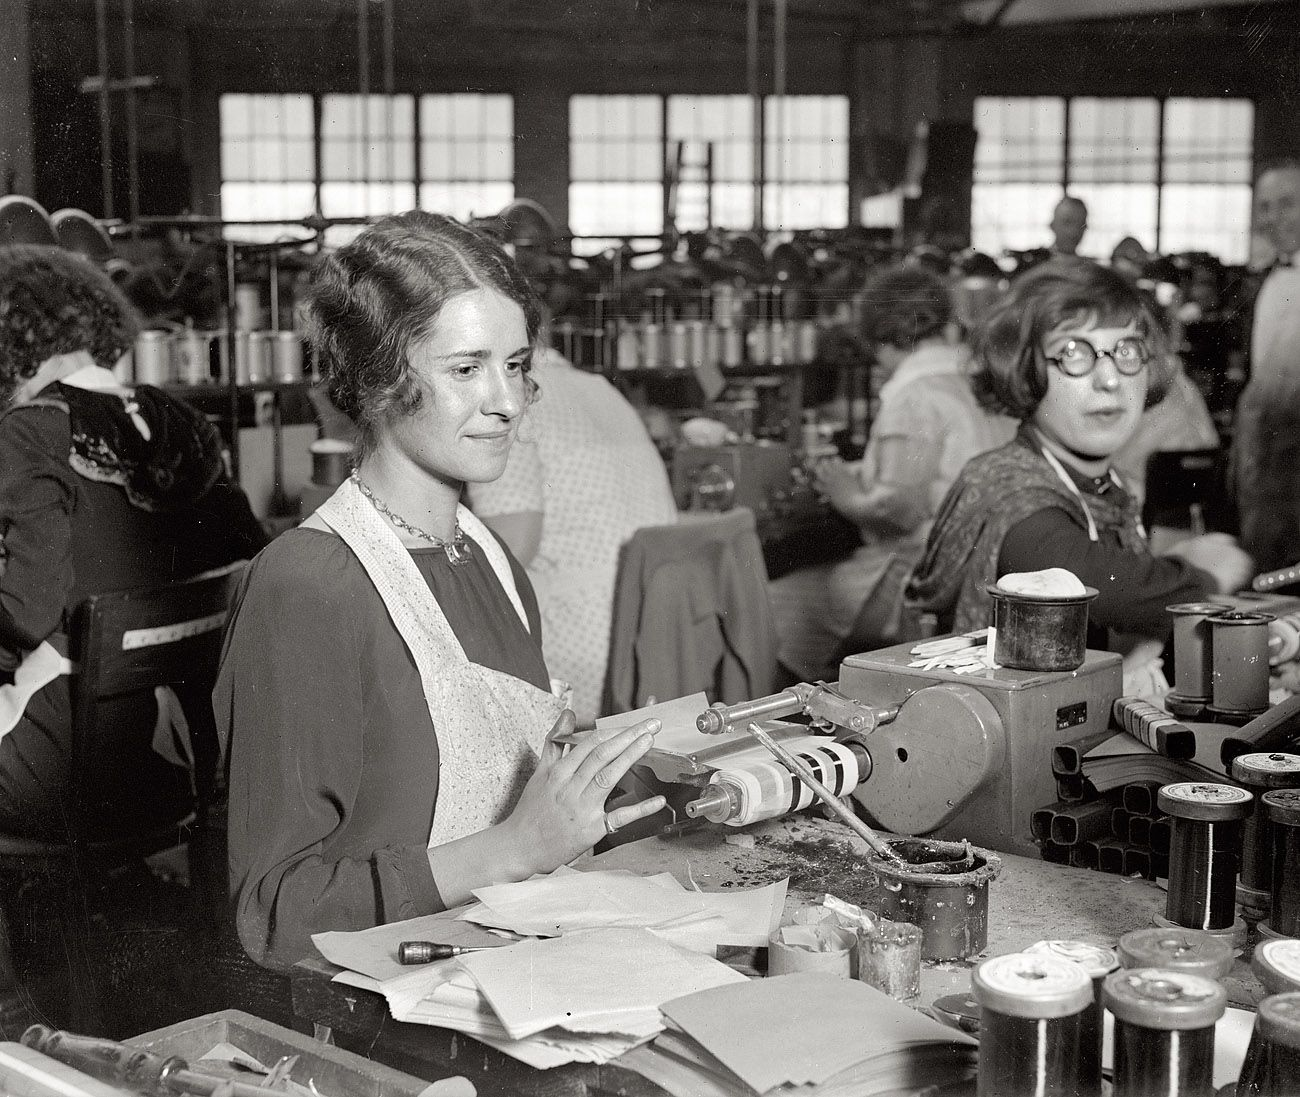 Workers at A. Atwater Kent's Philadelphia radio factory ...